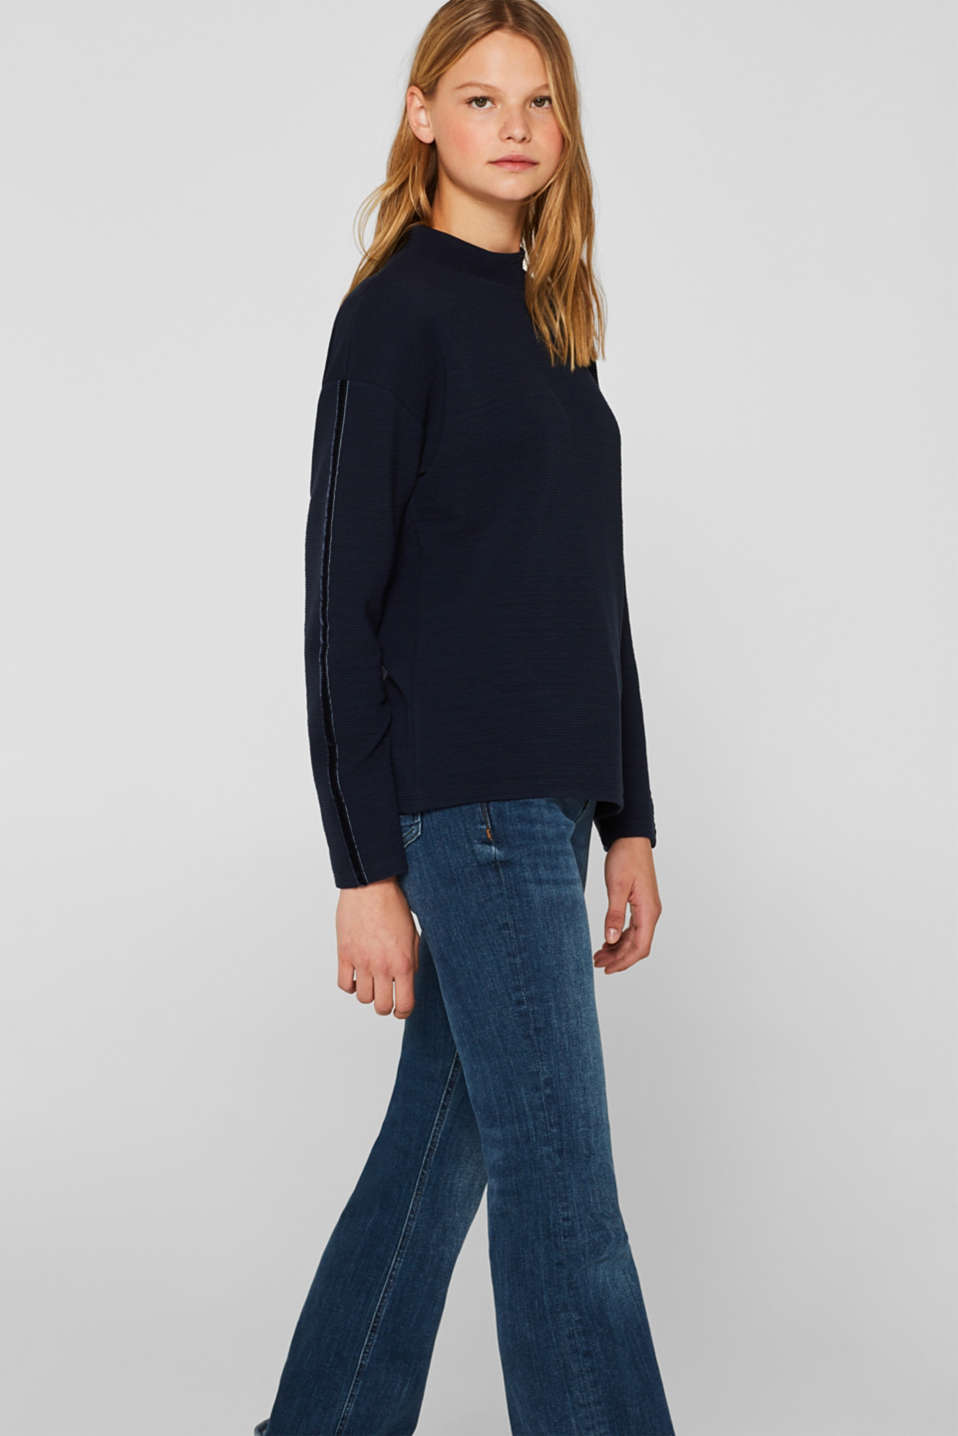 Stretch long sleeve top with velvet details, NAVY, detail image number 5